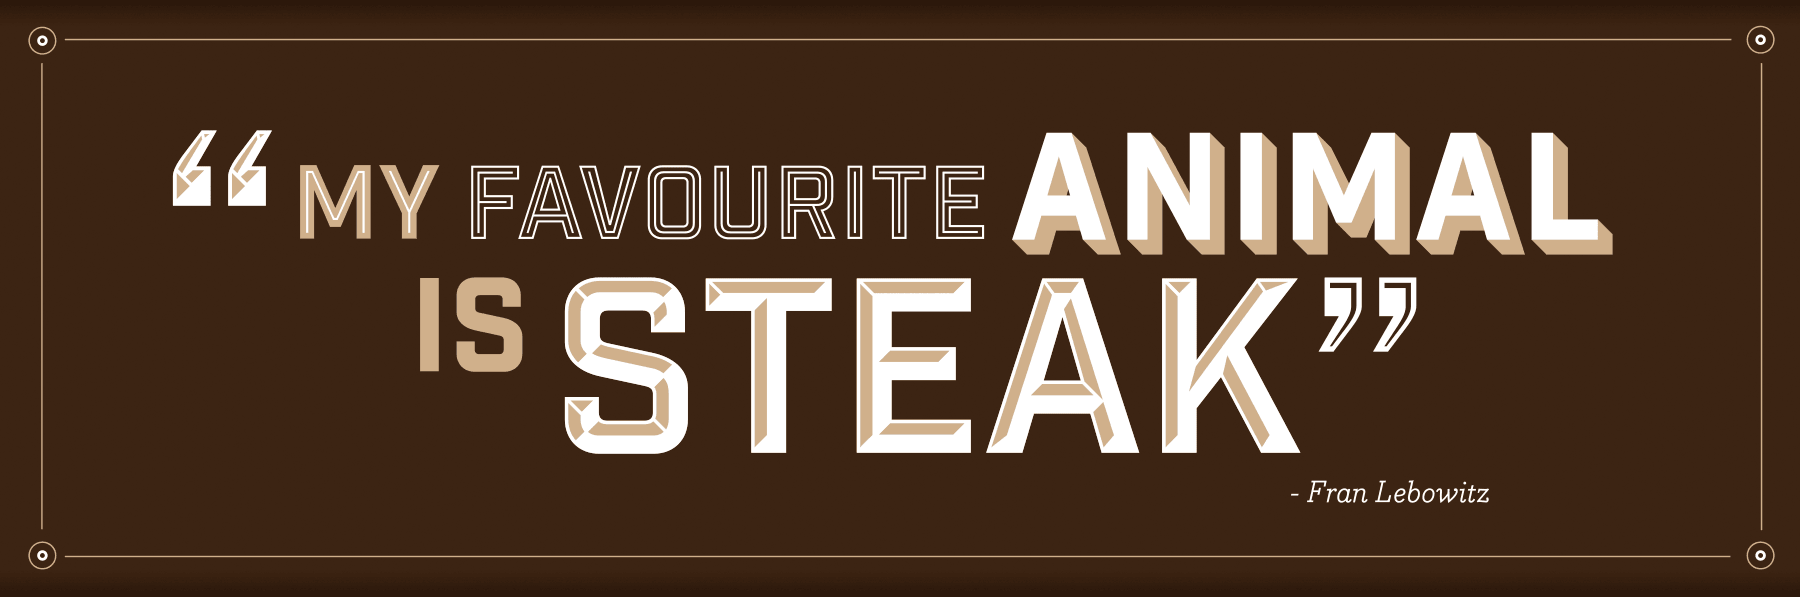 My favourite animal is steak